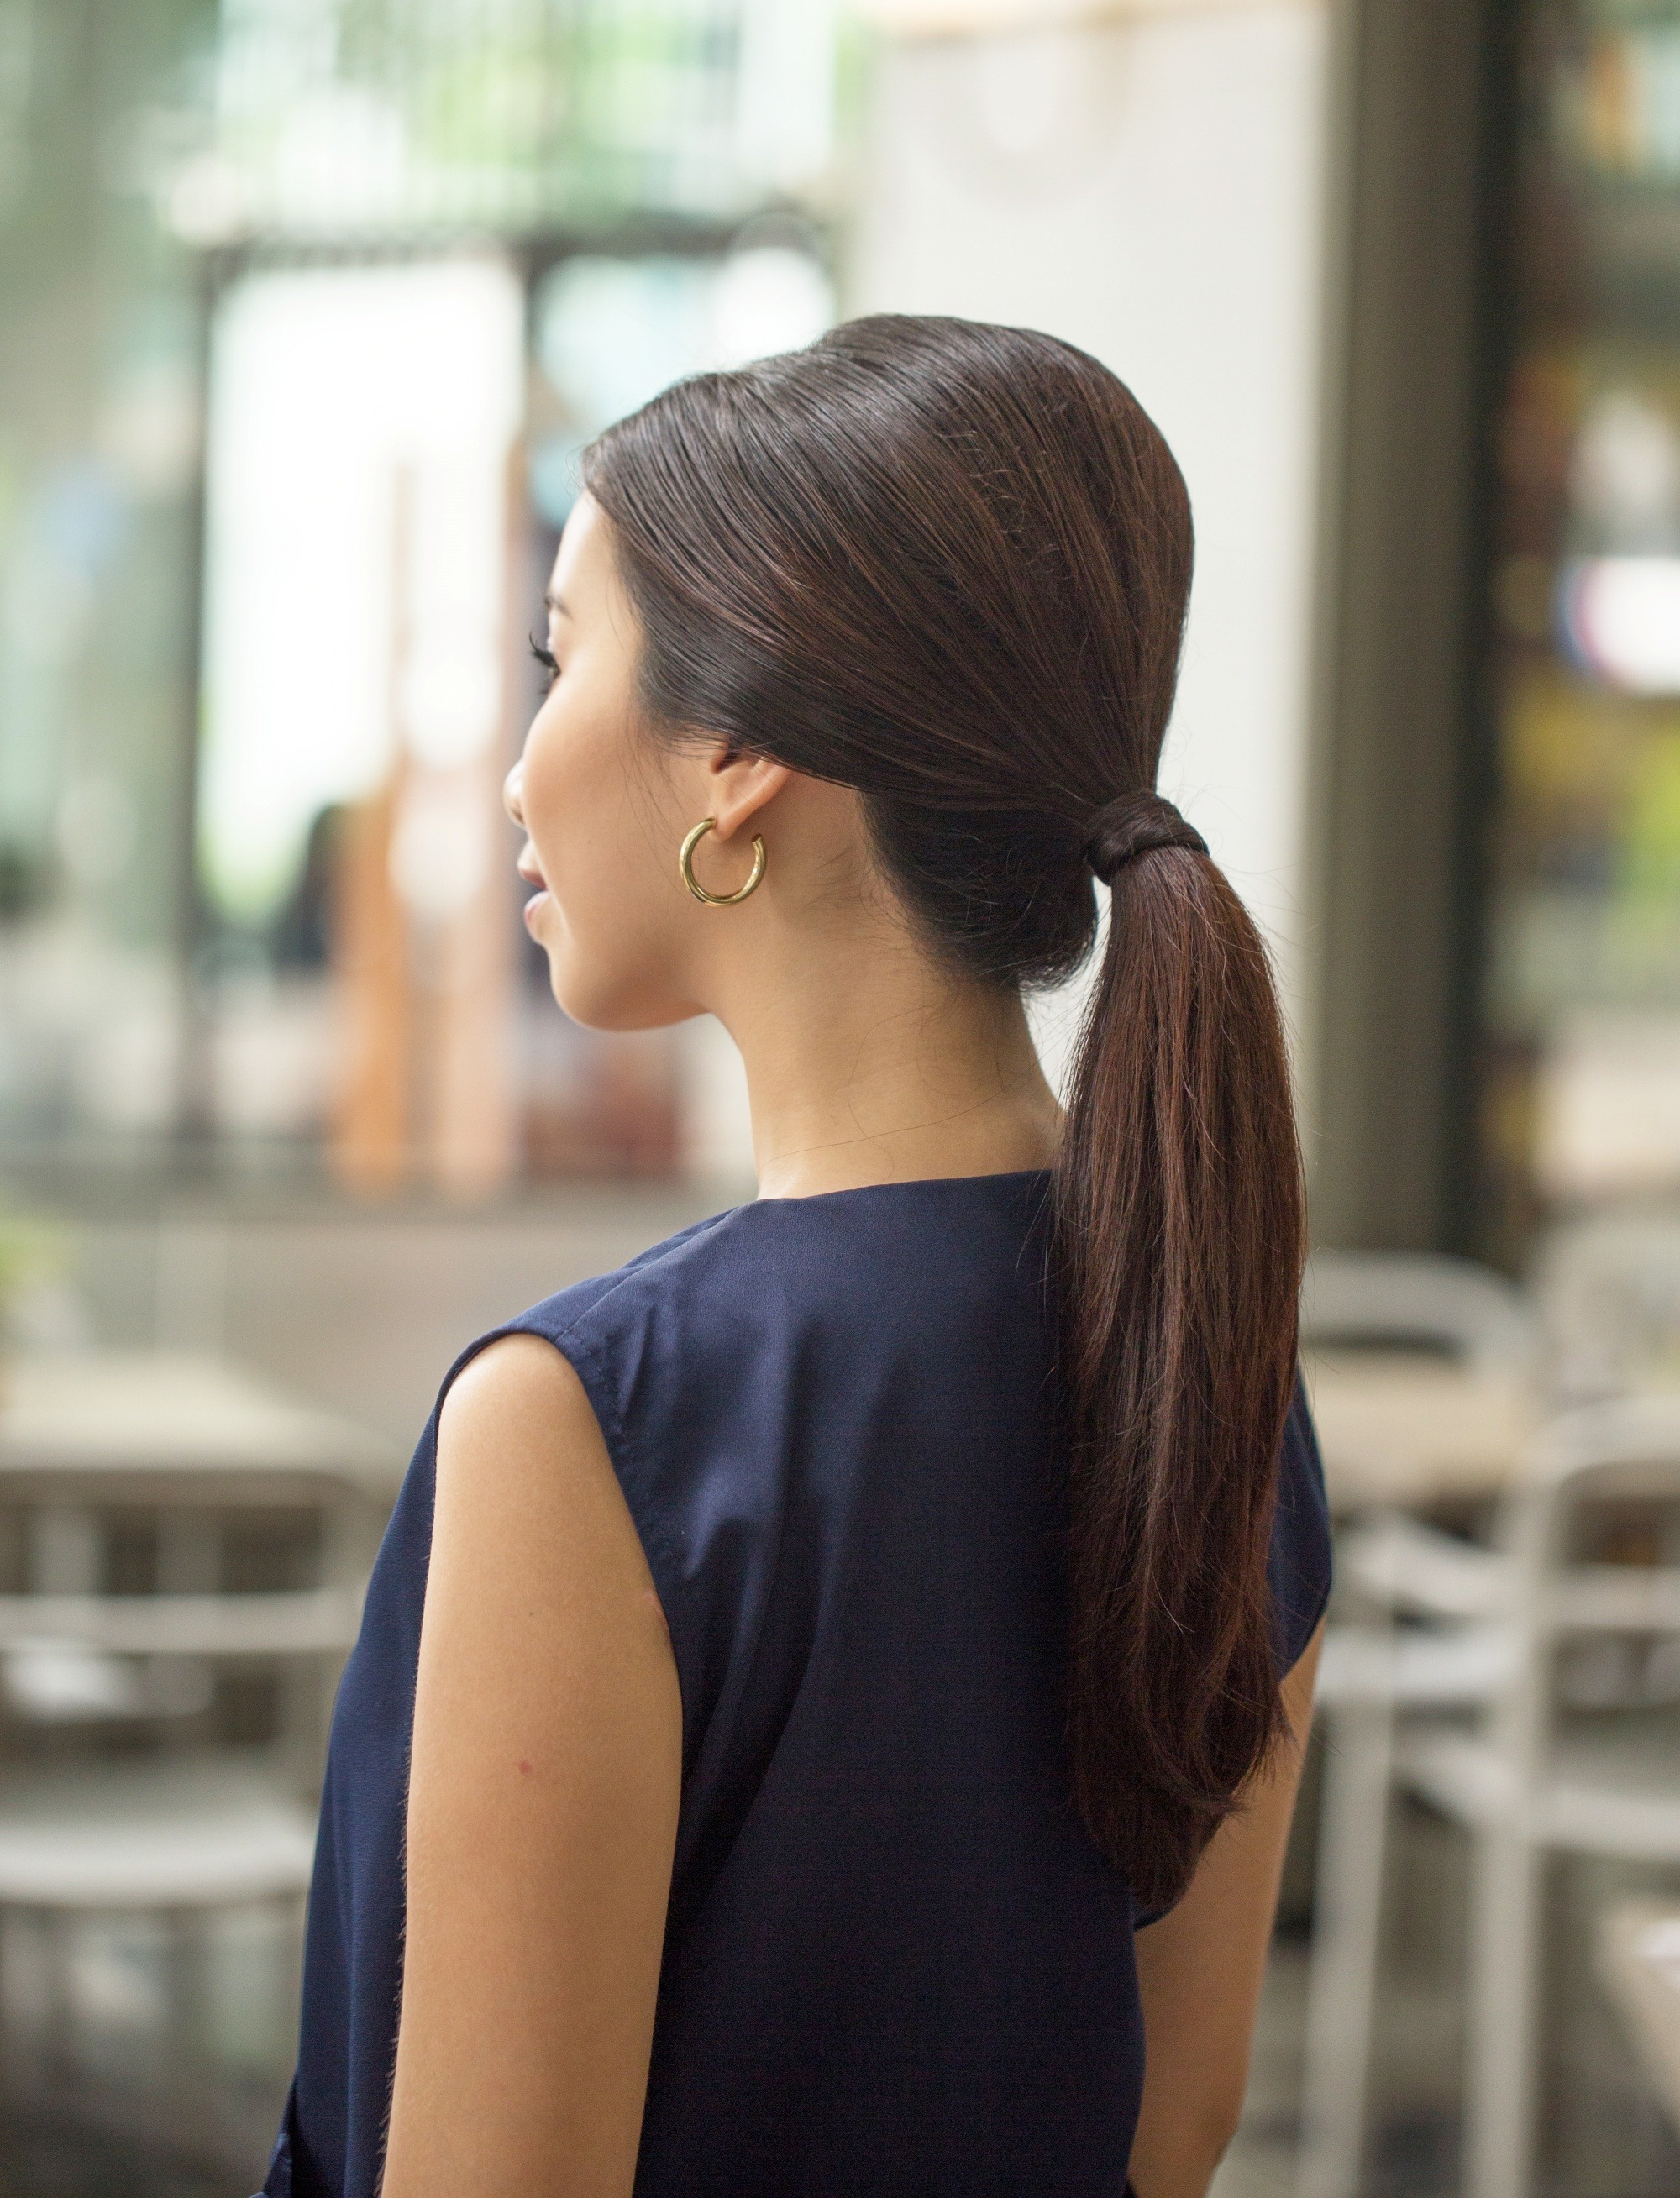 Vintage ponytail: Side view shot of an Asian woman with long dark hair in a vintage ponytail standing in an outdoor restaurand